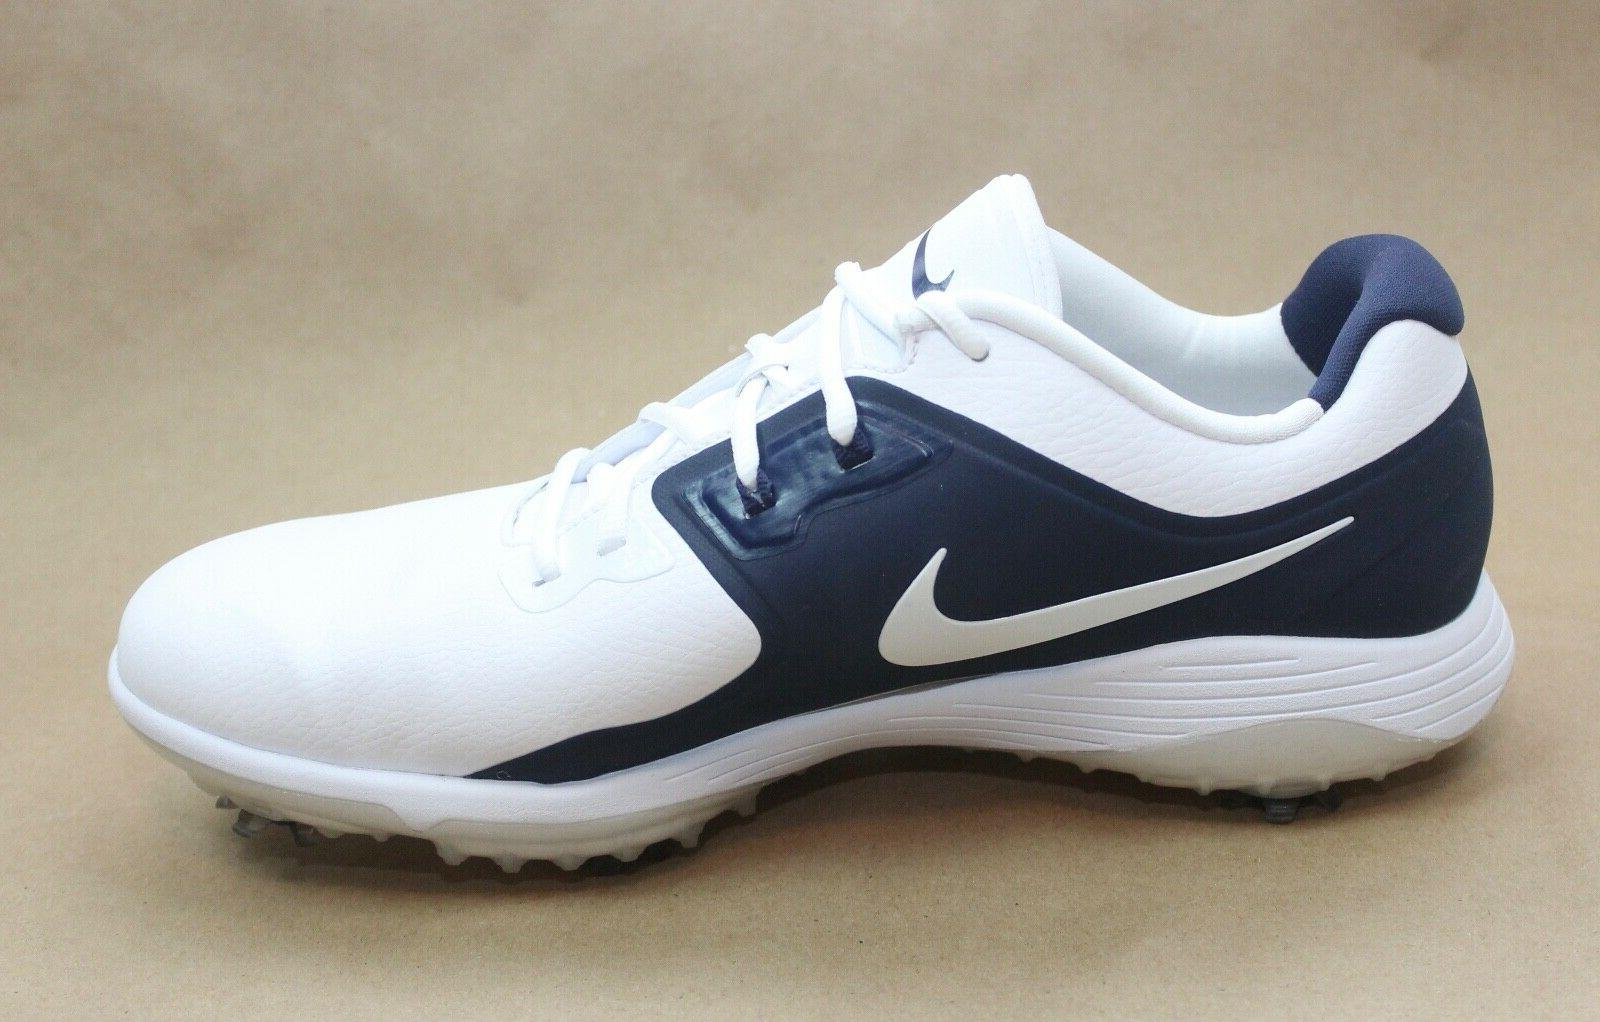 Nike Men S Vapor Pro Golf Shoes White Navy